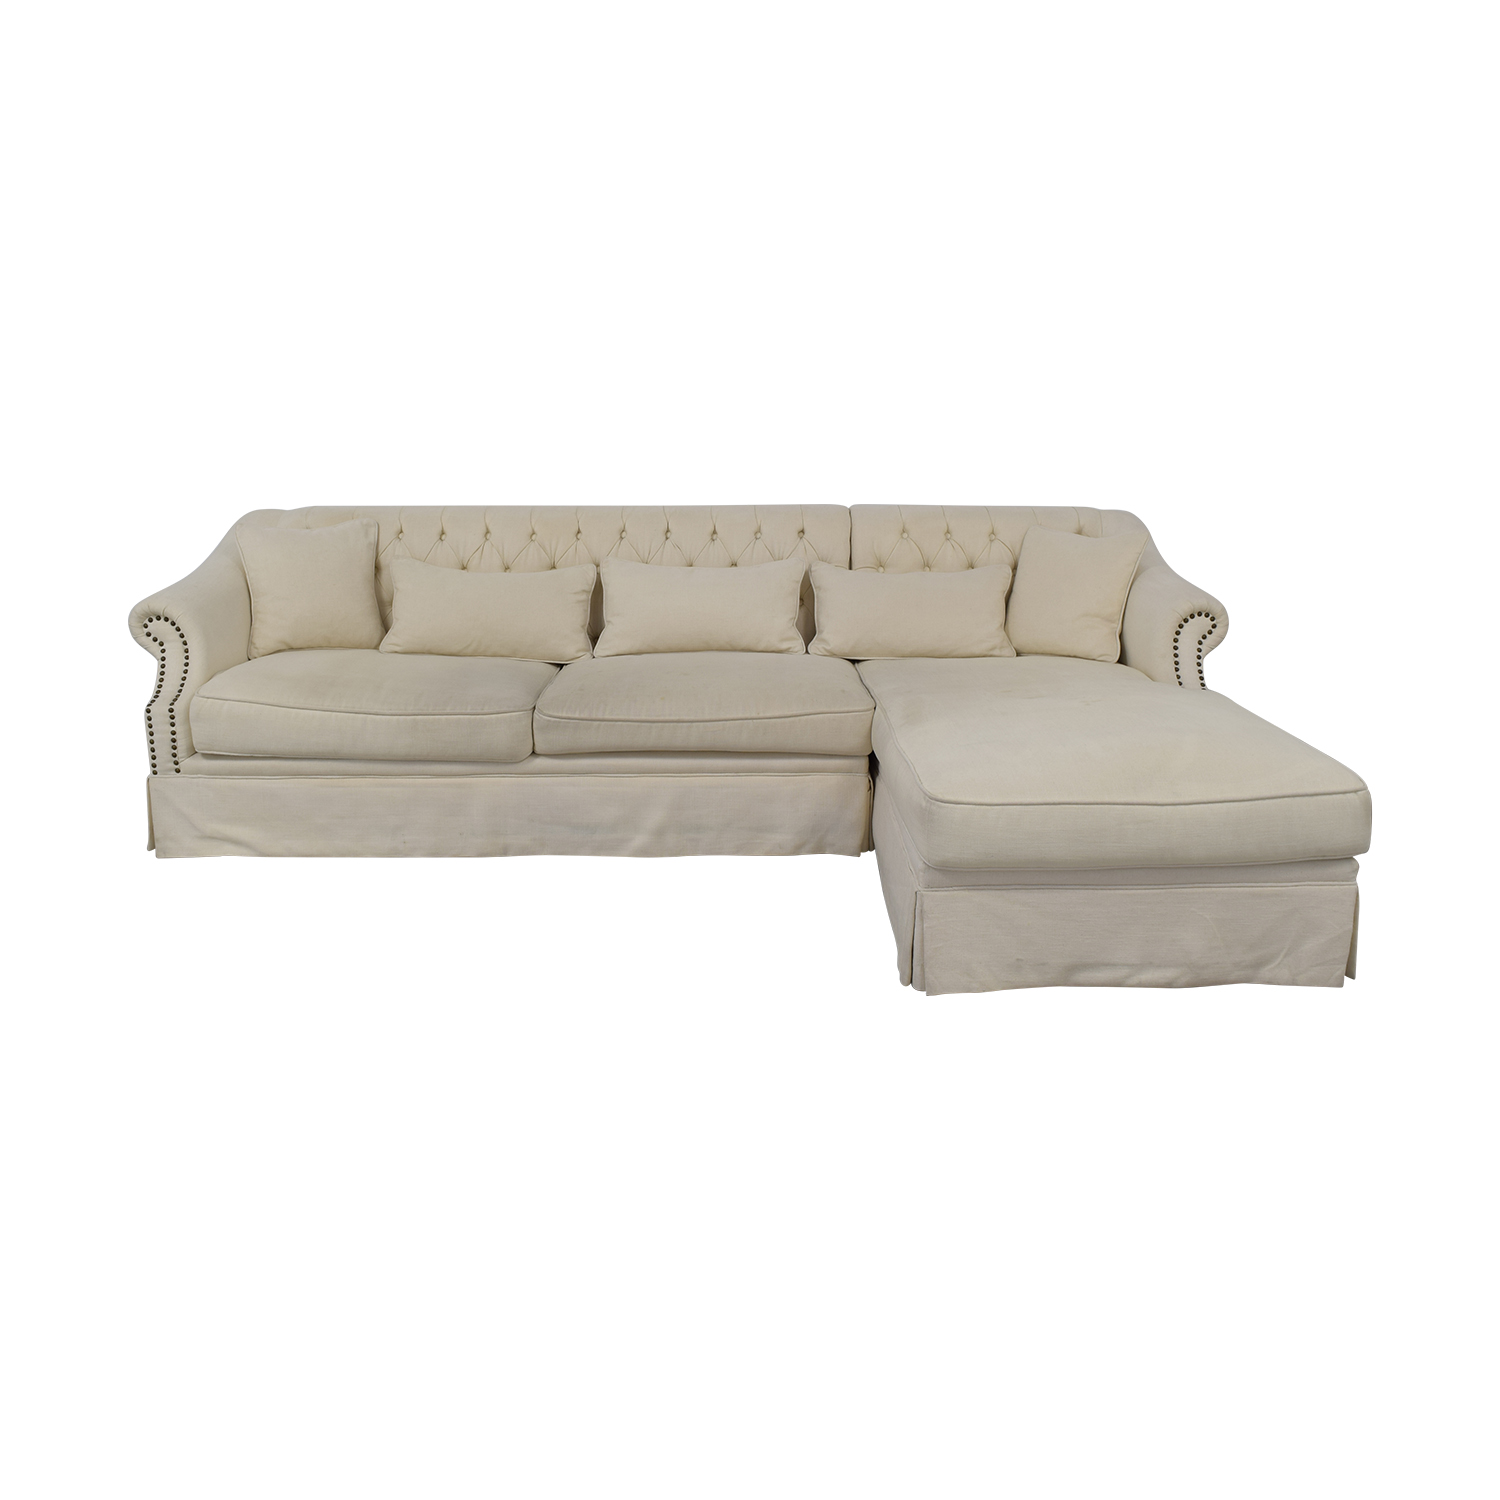 ABC Carpet & Home ABC Carpet & Home Chaise Sectional Sofa cream